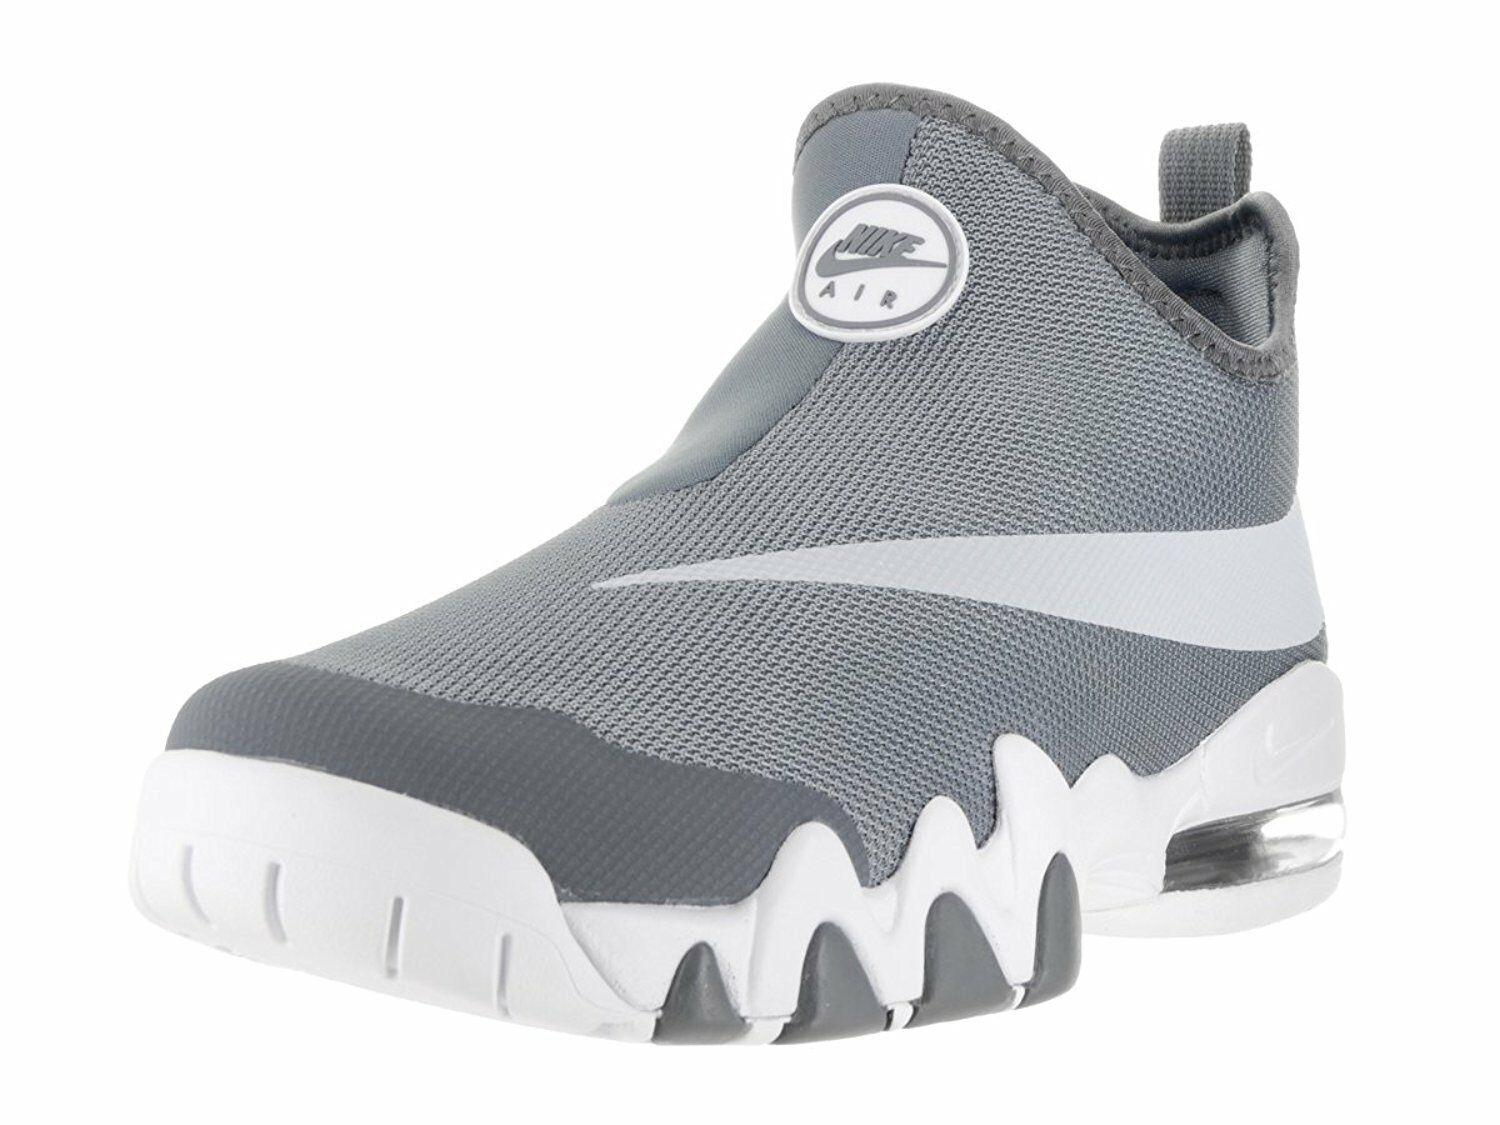 NIKE Men's Big Swoosh Basketball Shoes